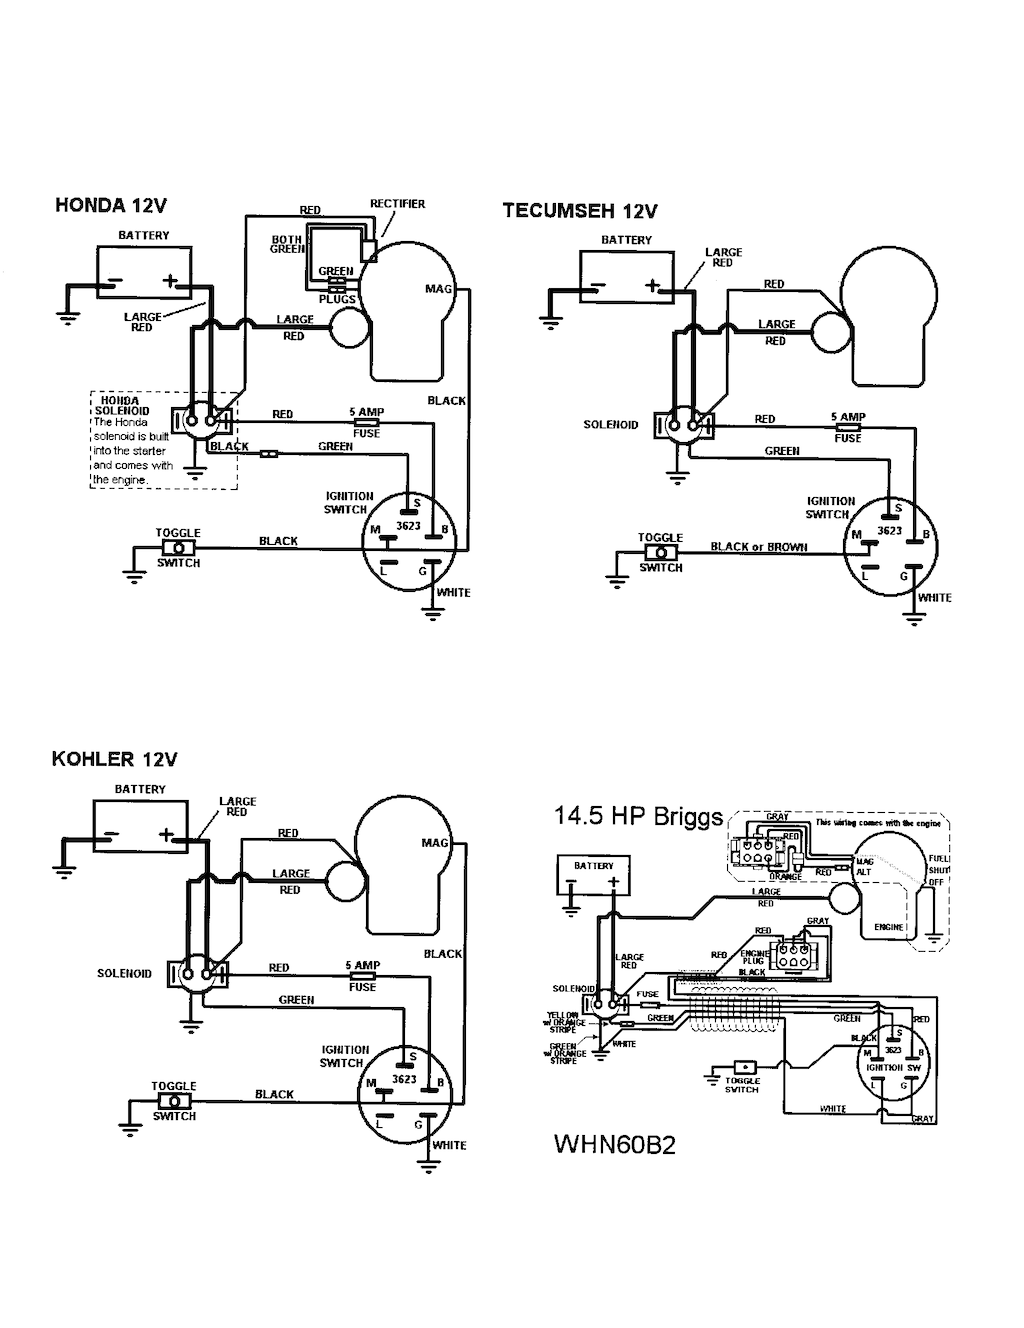 14 hp vanguard wiring diagram kohler k321 14 hp ignition wiring diagram i recently purchased a used 60 quot swisher pull behind mower with